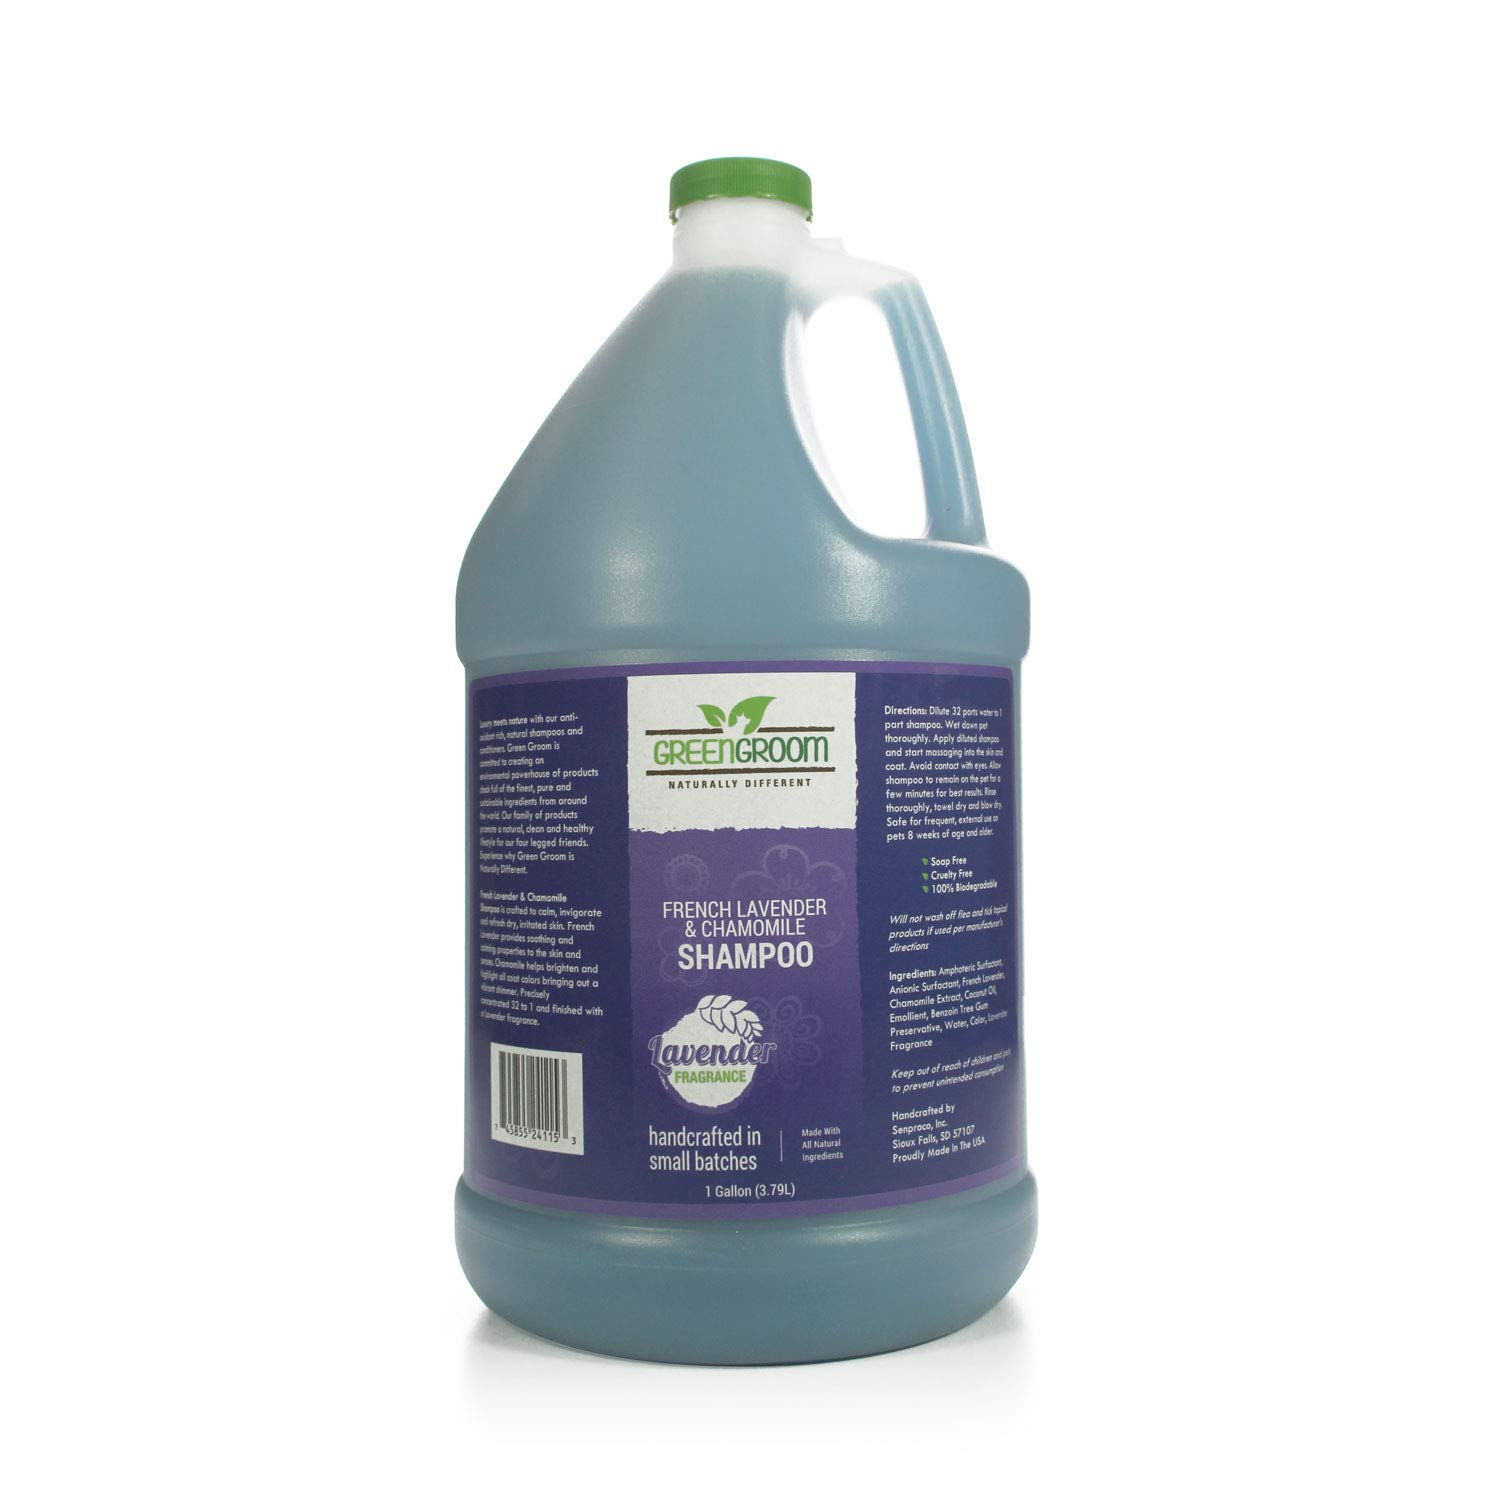 Green Groom French Lavender & Chamomile Aromatherapy Shampoo, 1 Gallon by Green Groom